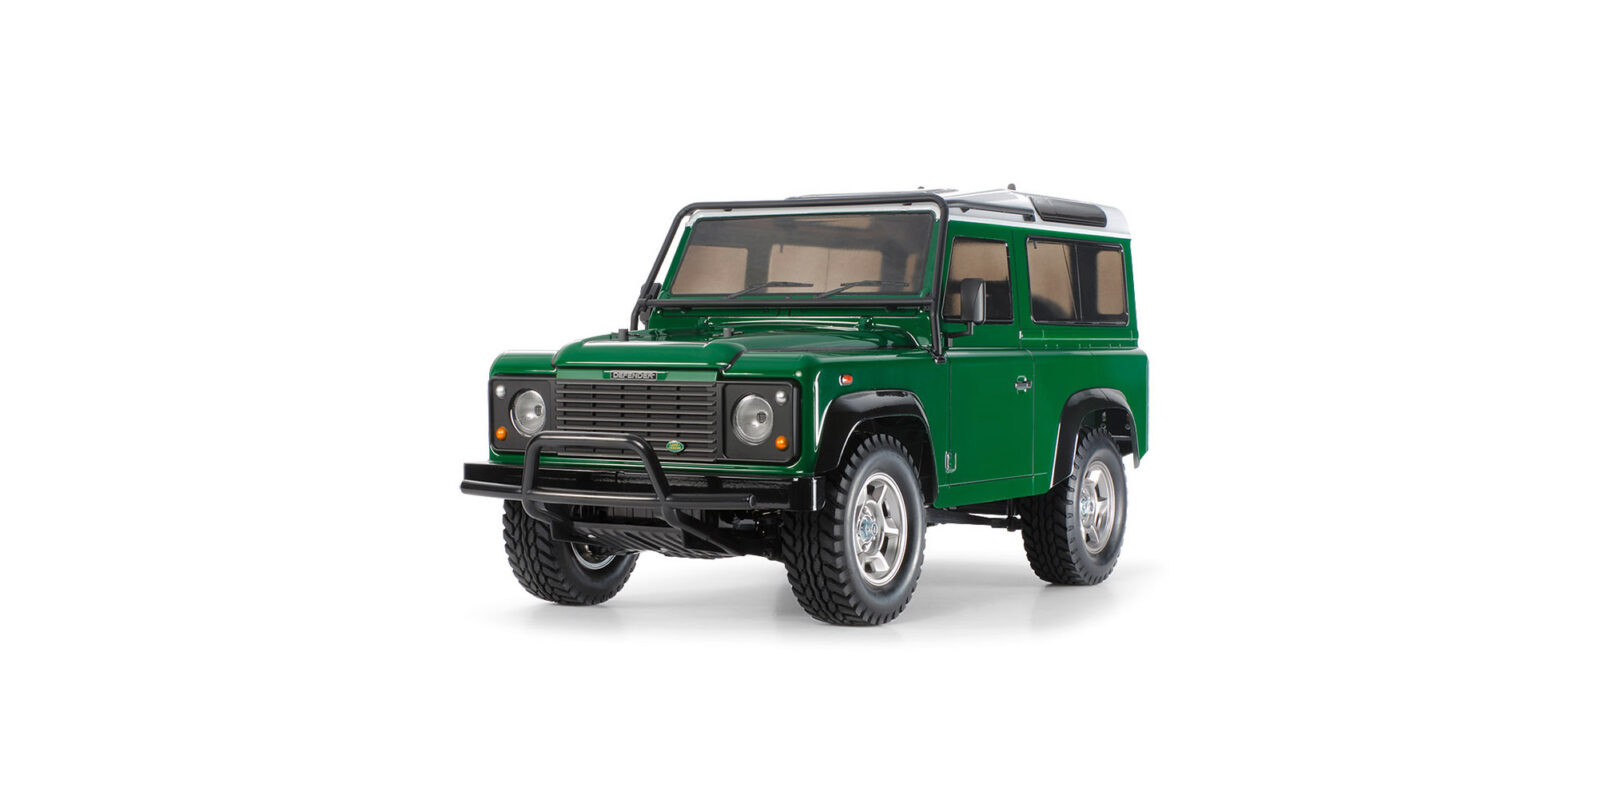 Tamiya Land Rover Defender RC Model 1600x799 - Tamiya Land Rover Defender 1:10 Scale R/C Model Kit